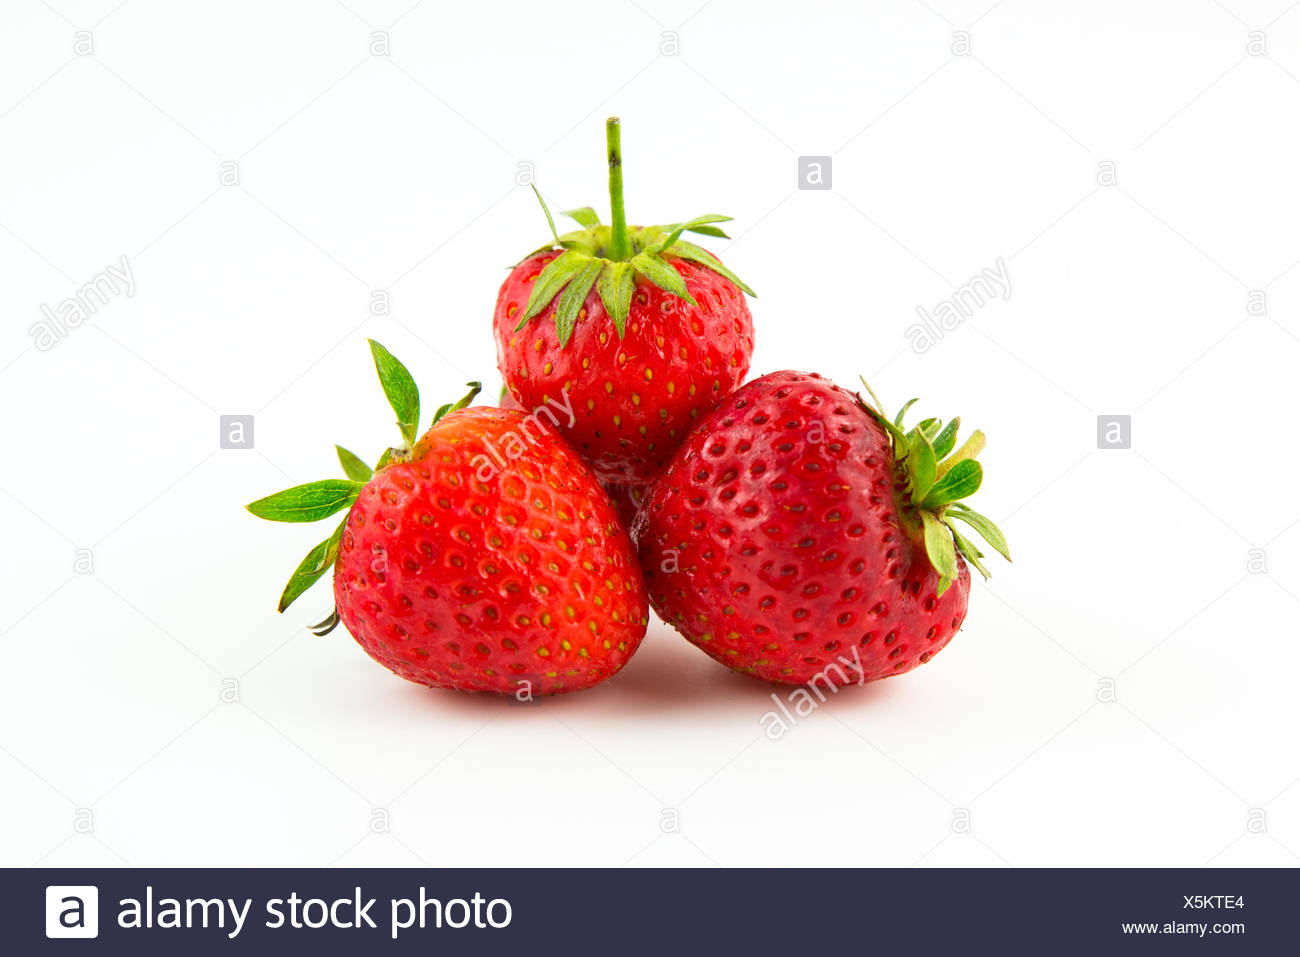 exempted strawberries - Stock Image